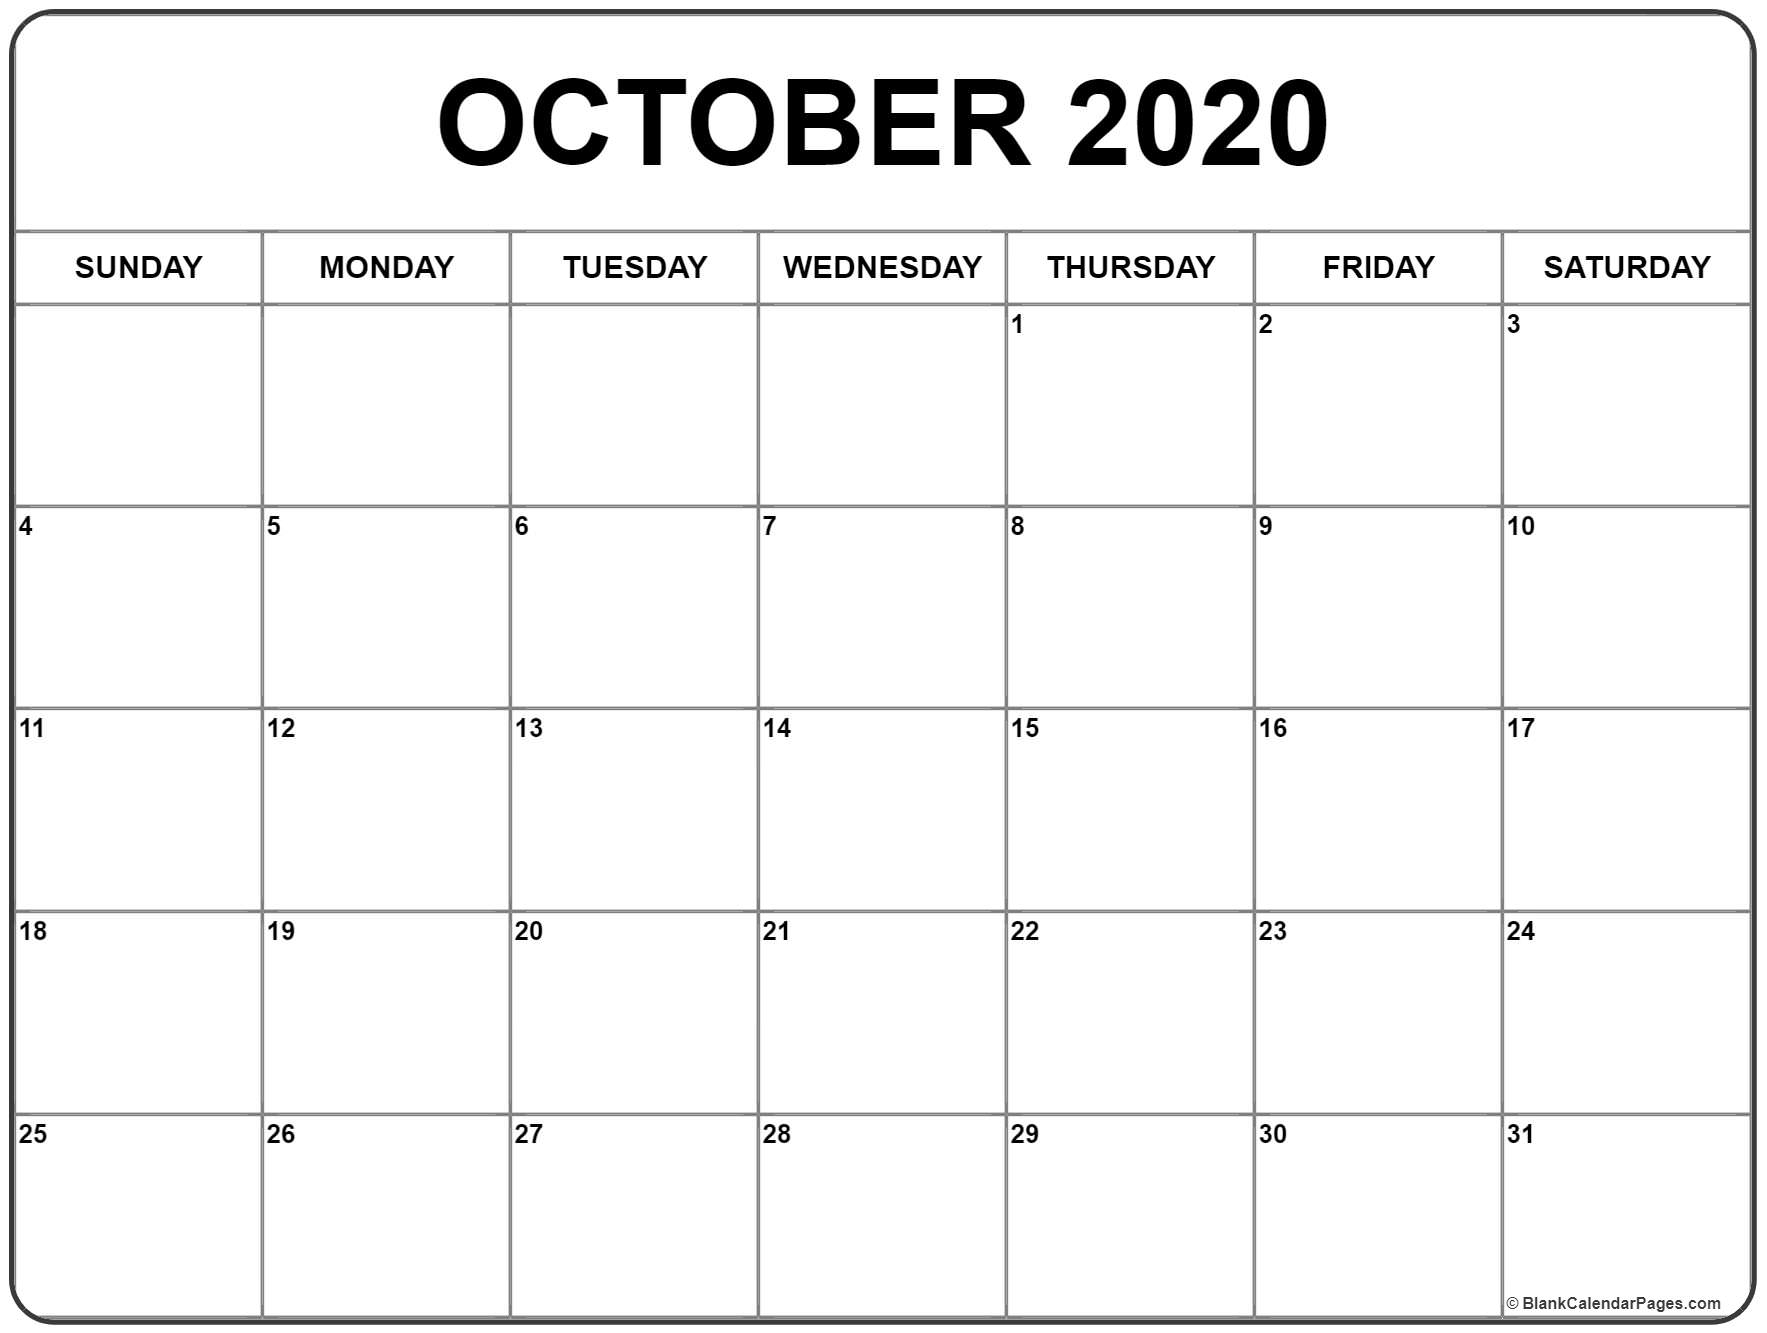 October 2020 Calendar | Free Printable Monthly Calendars in 2020 Free Printable Emploee Calendars